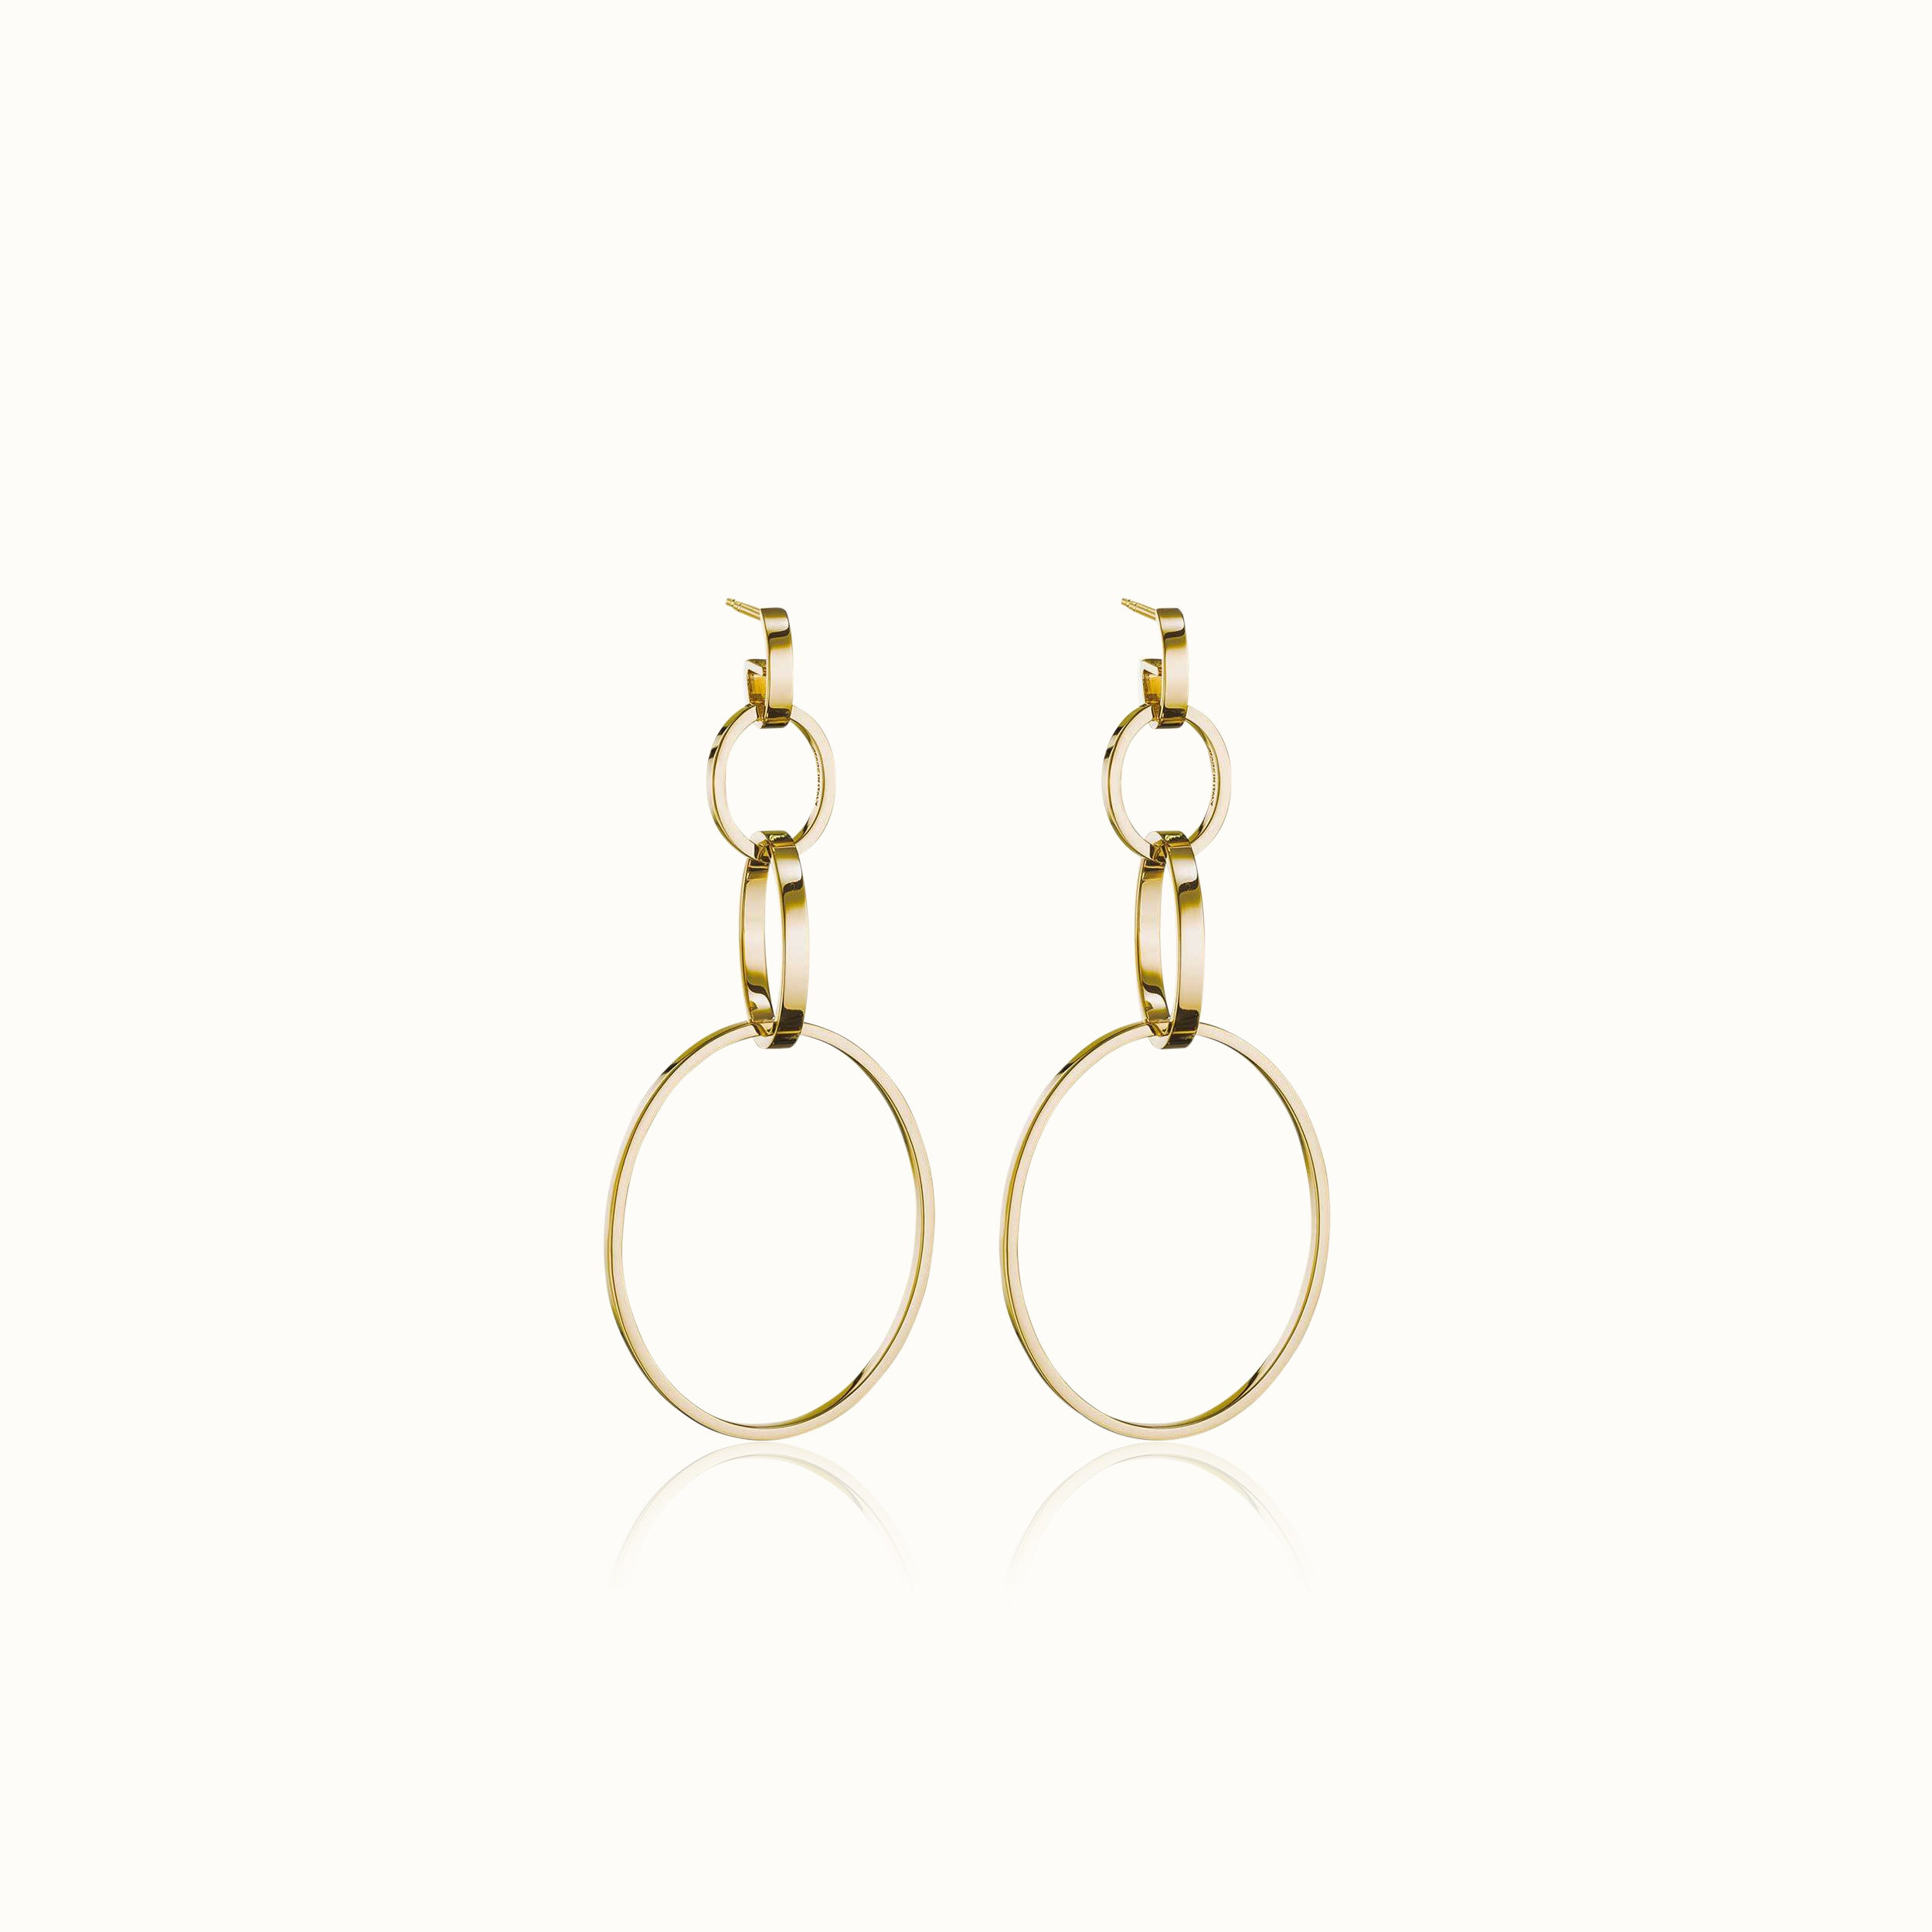 Cassio Earrings